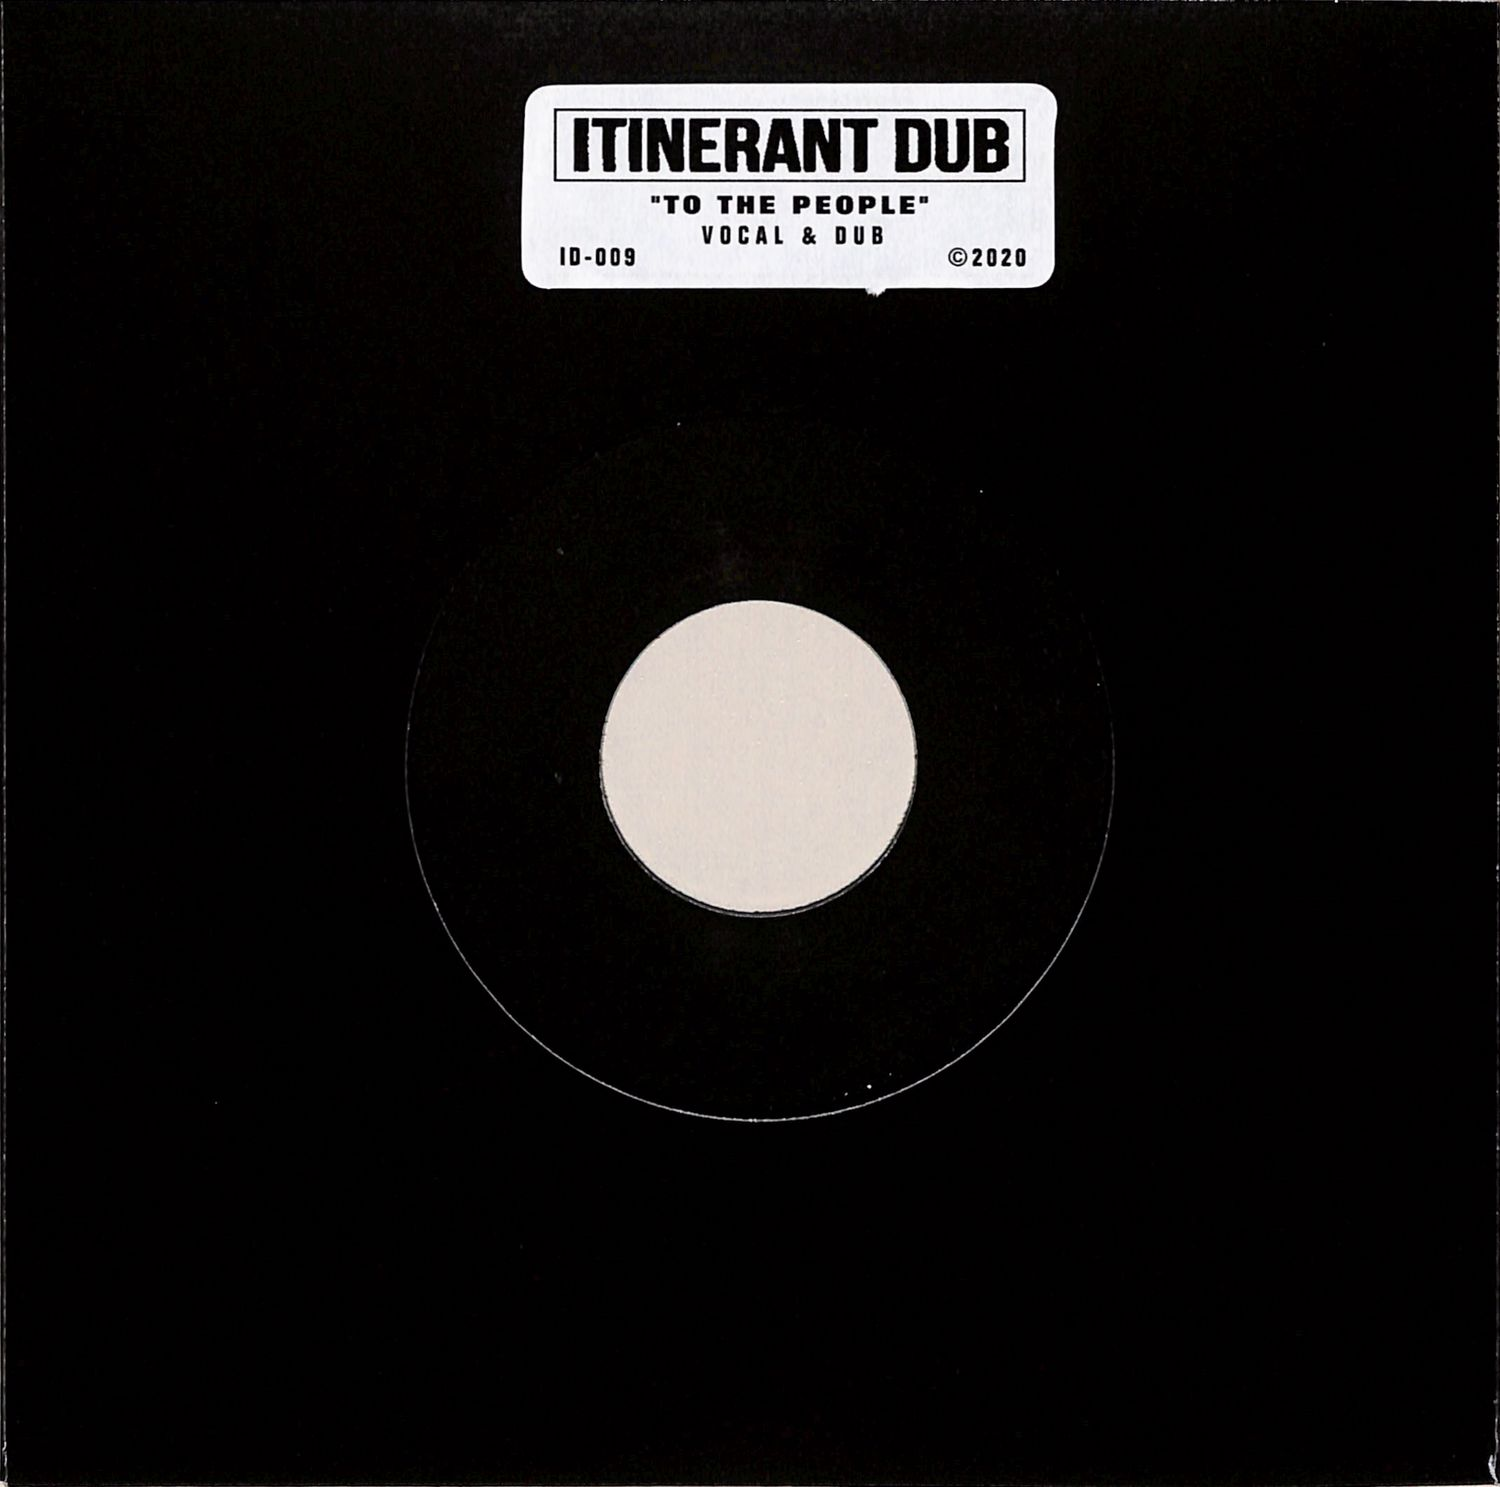 Itinerant Dubs - TO THE PEOPLE